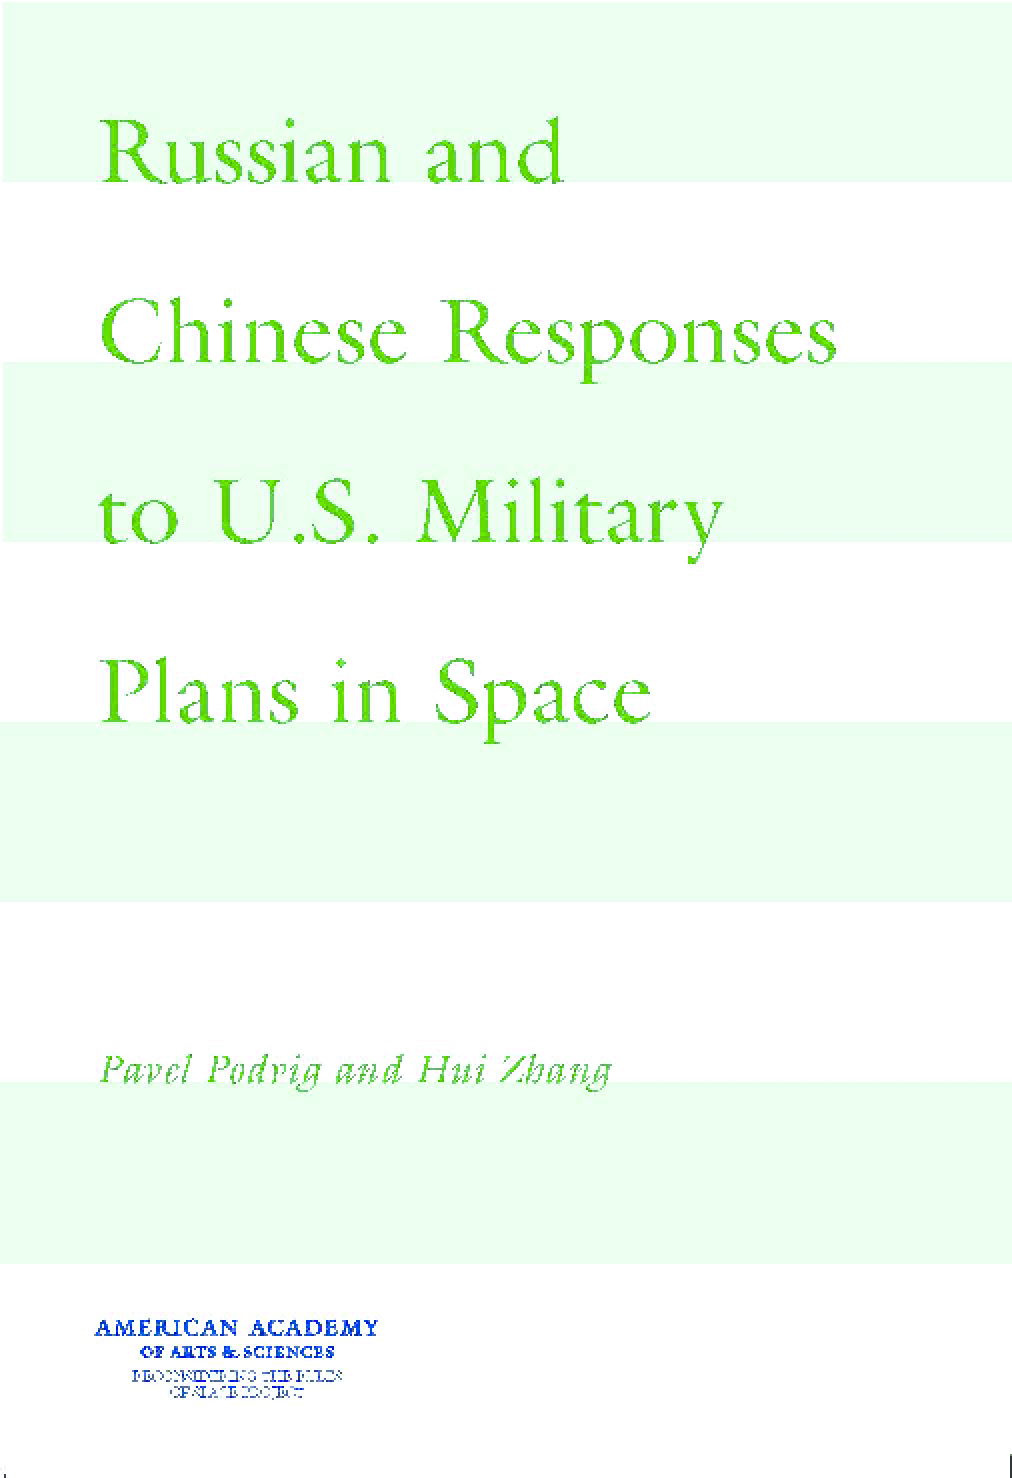 Russian and Chinese Responses to U.S. Military Plans in Space